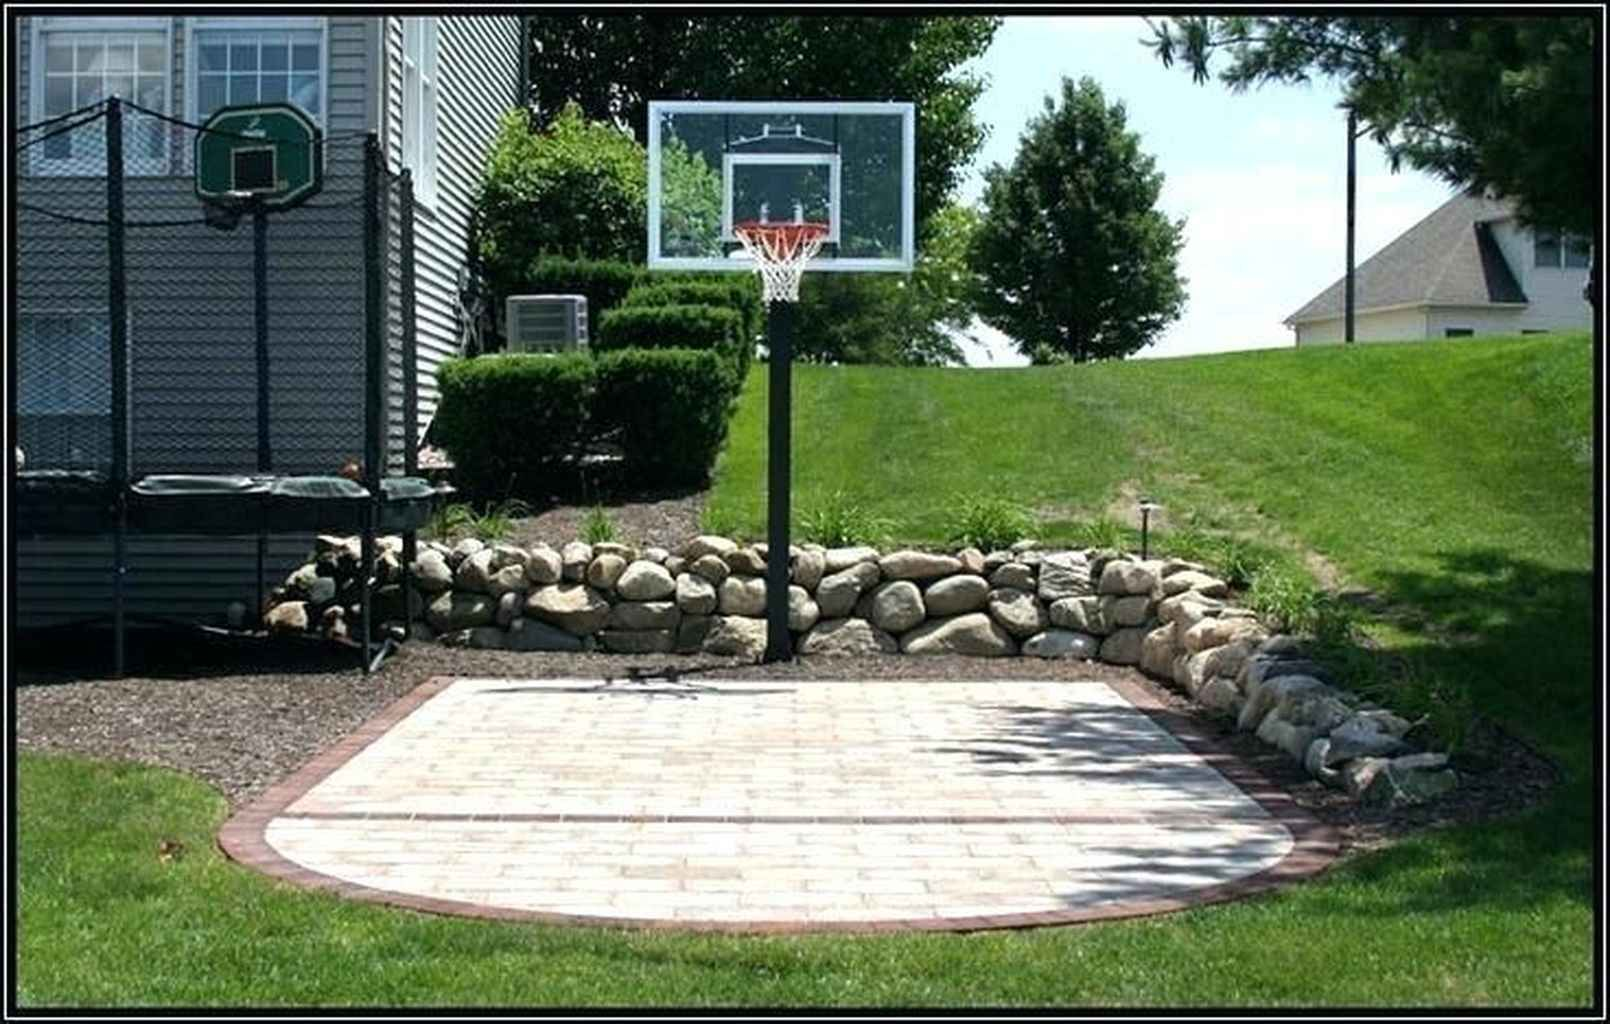 85 Fun Backyard Kids Design Ideas For Summer Outdoor Playground Homixover Com Pavers Backyard Backyard Court Backyard Basketball